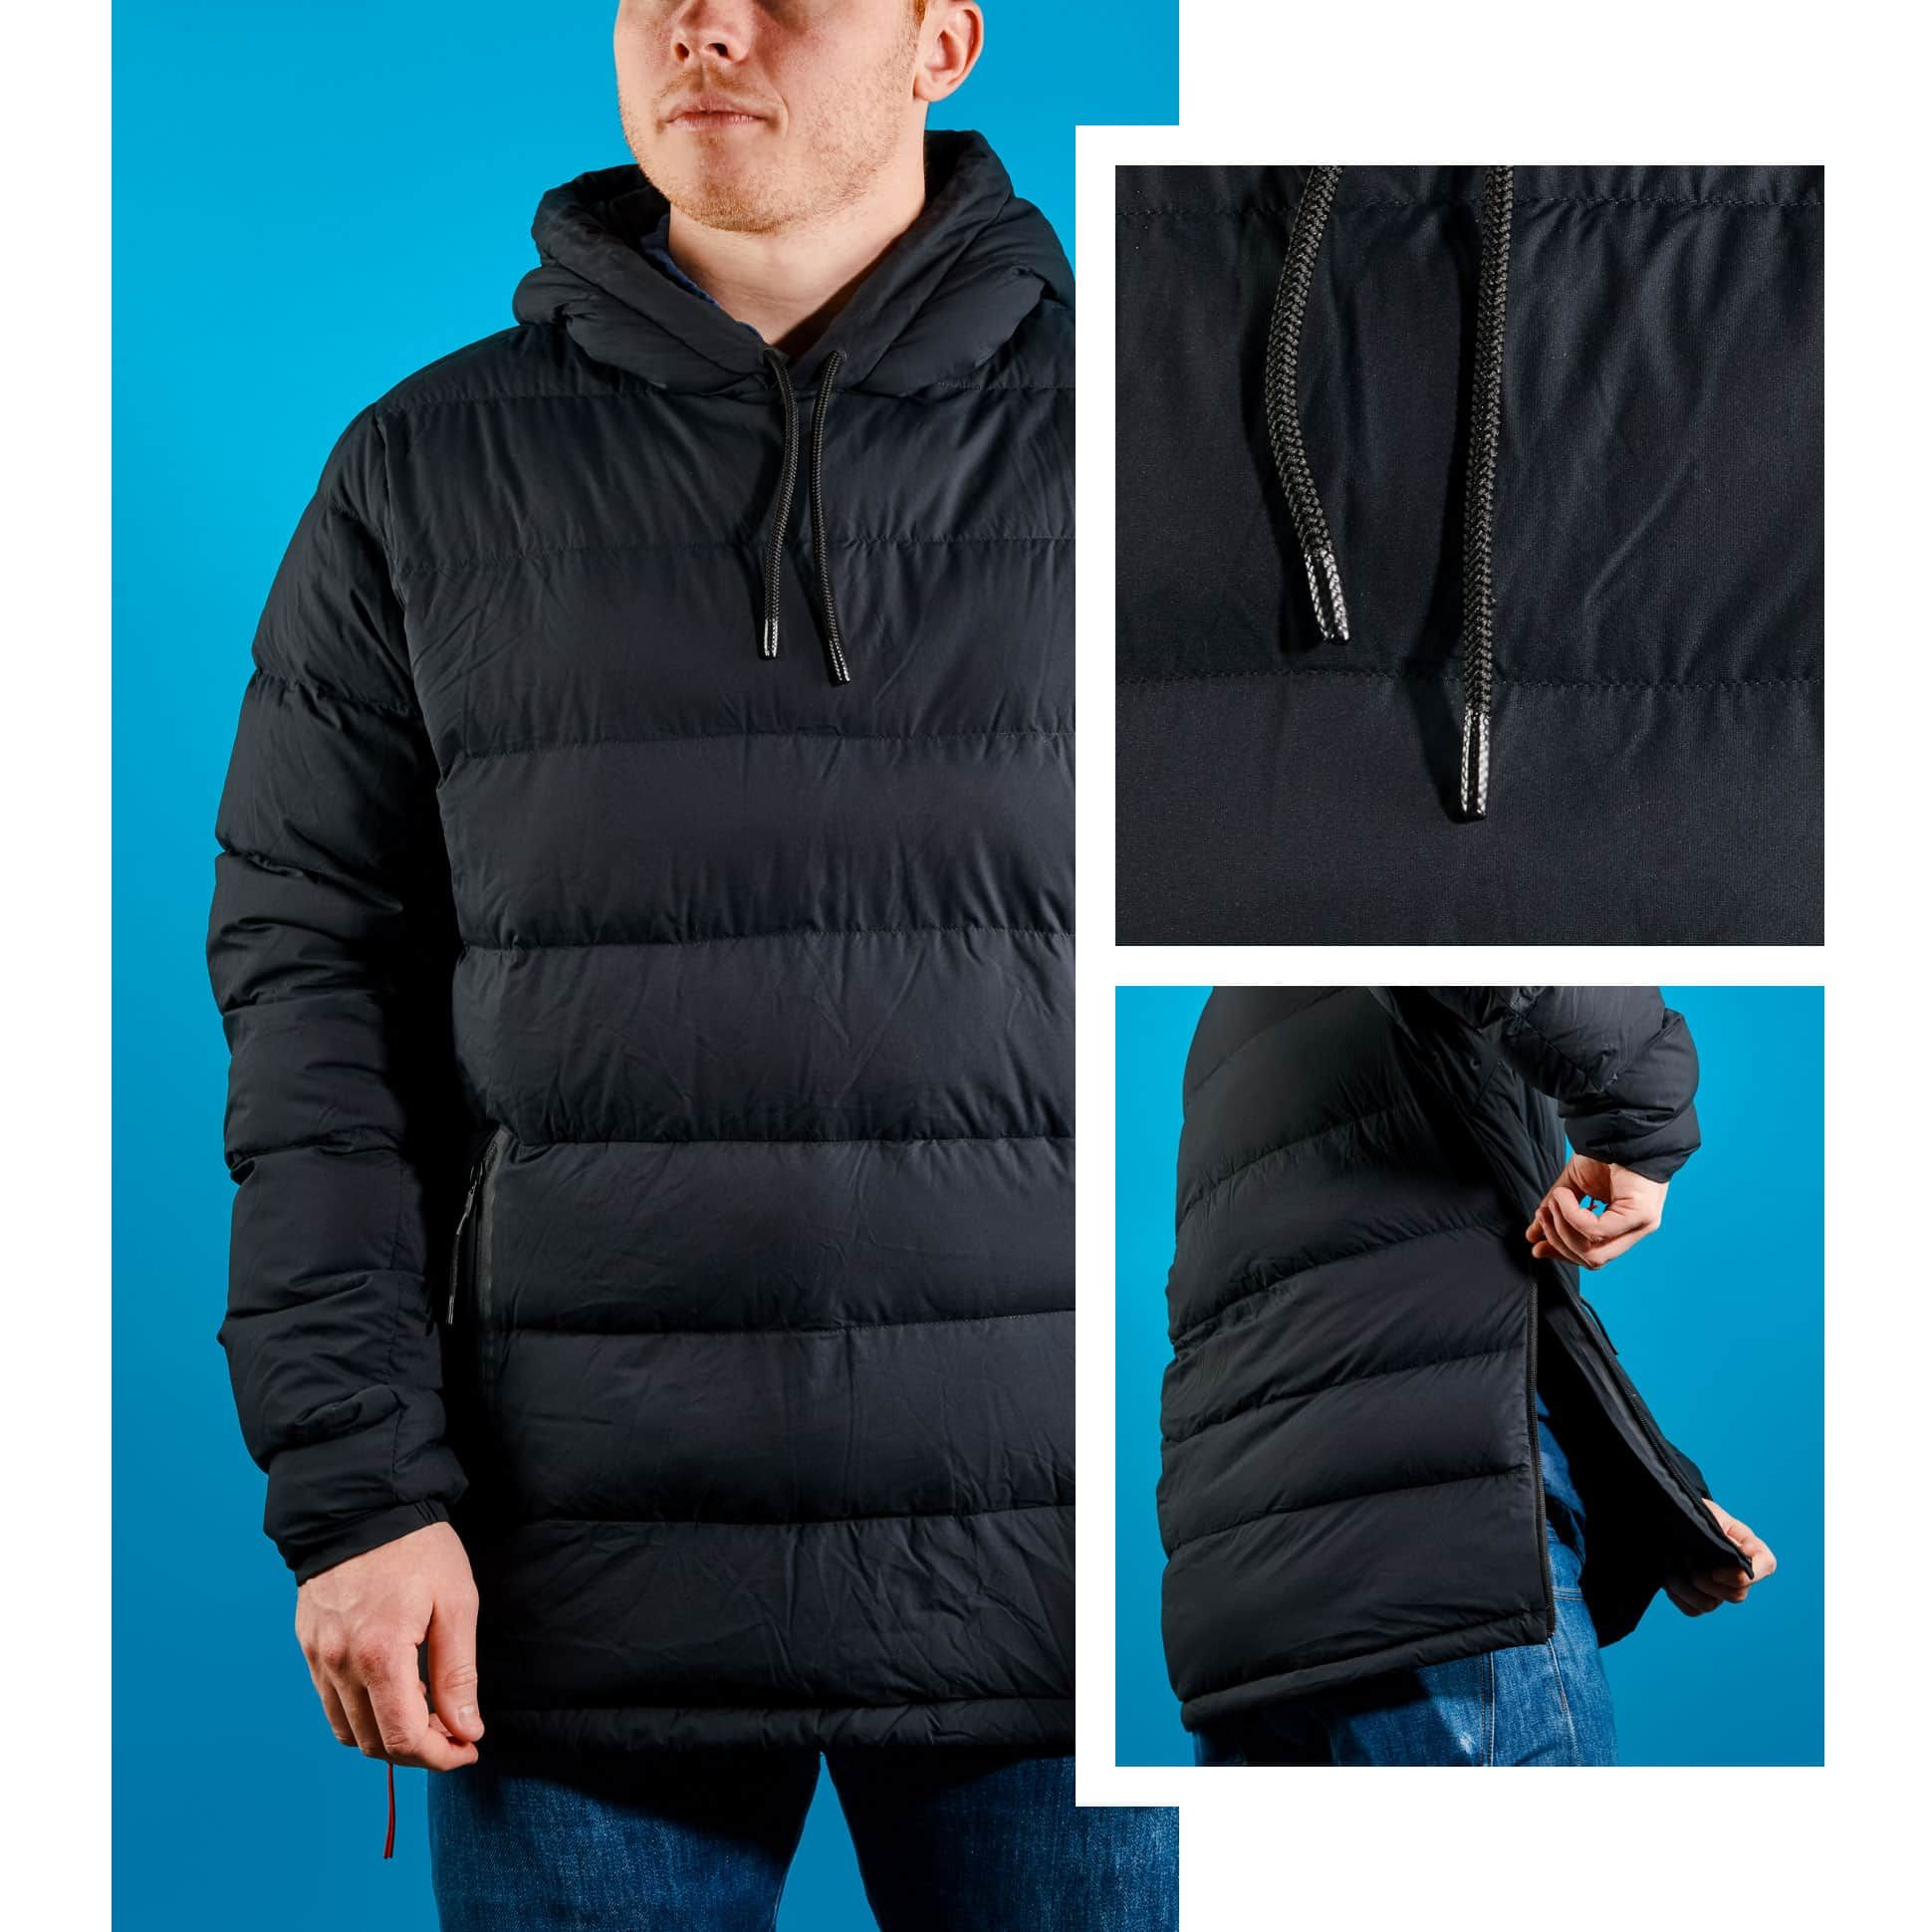 factory authentic uk availability classic The 12 Best Down Jackets of Winter 2019 • Gear Patrol